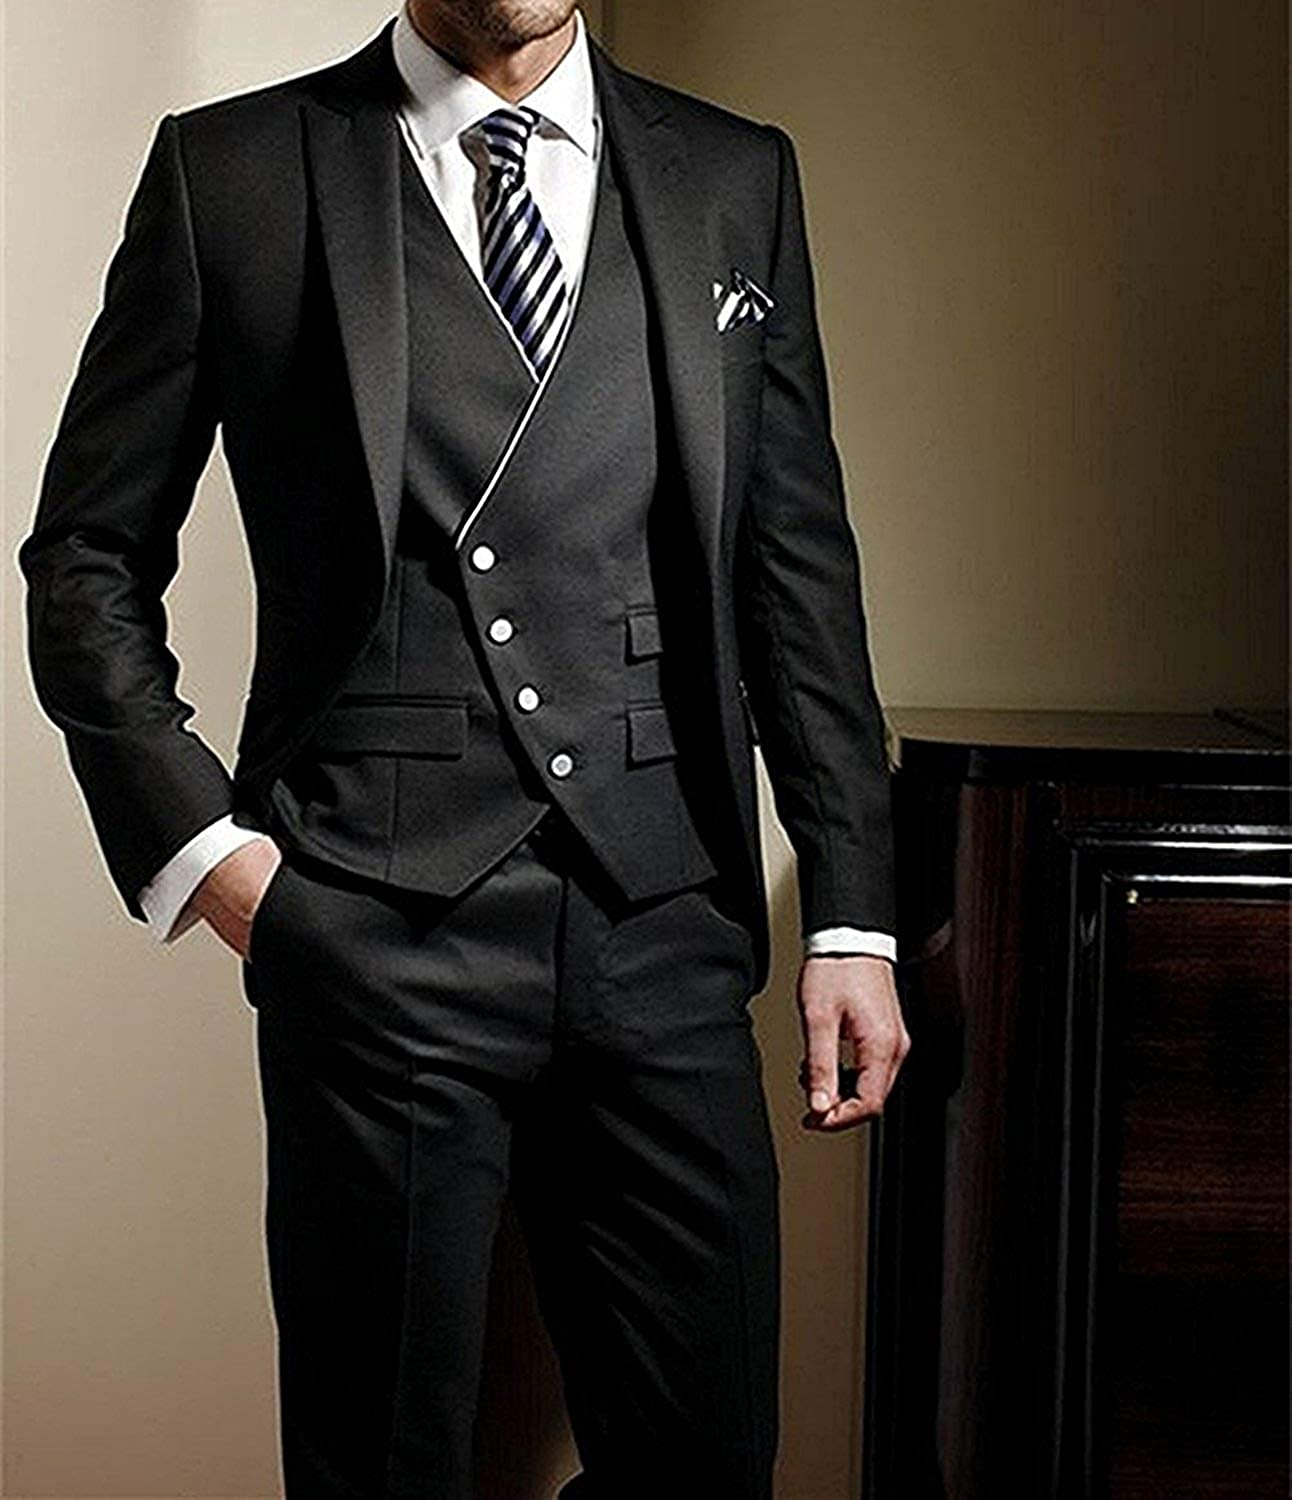 P&G Men's Shawl Lapel Suit Three Pieces Weddings Prom Party Dinner Tuxedo Black/B nNnvz